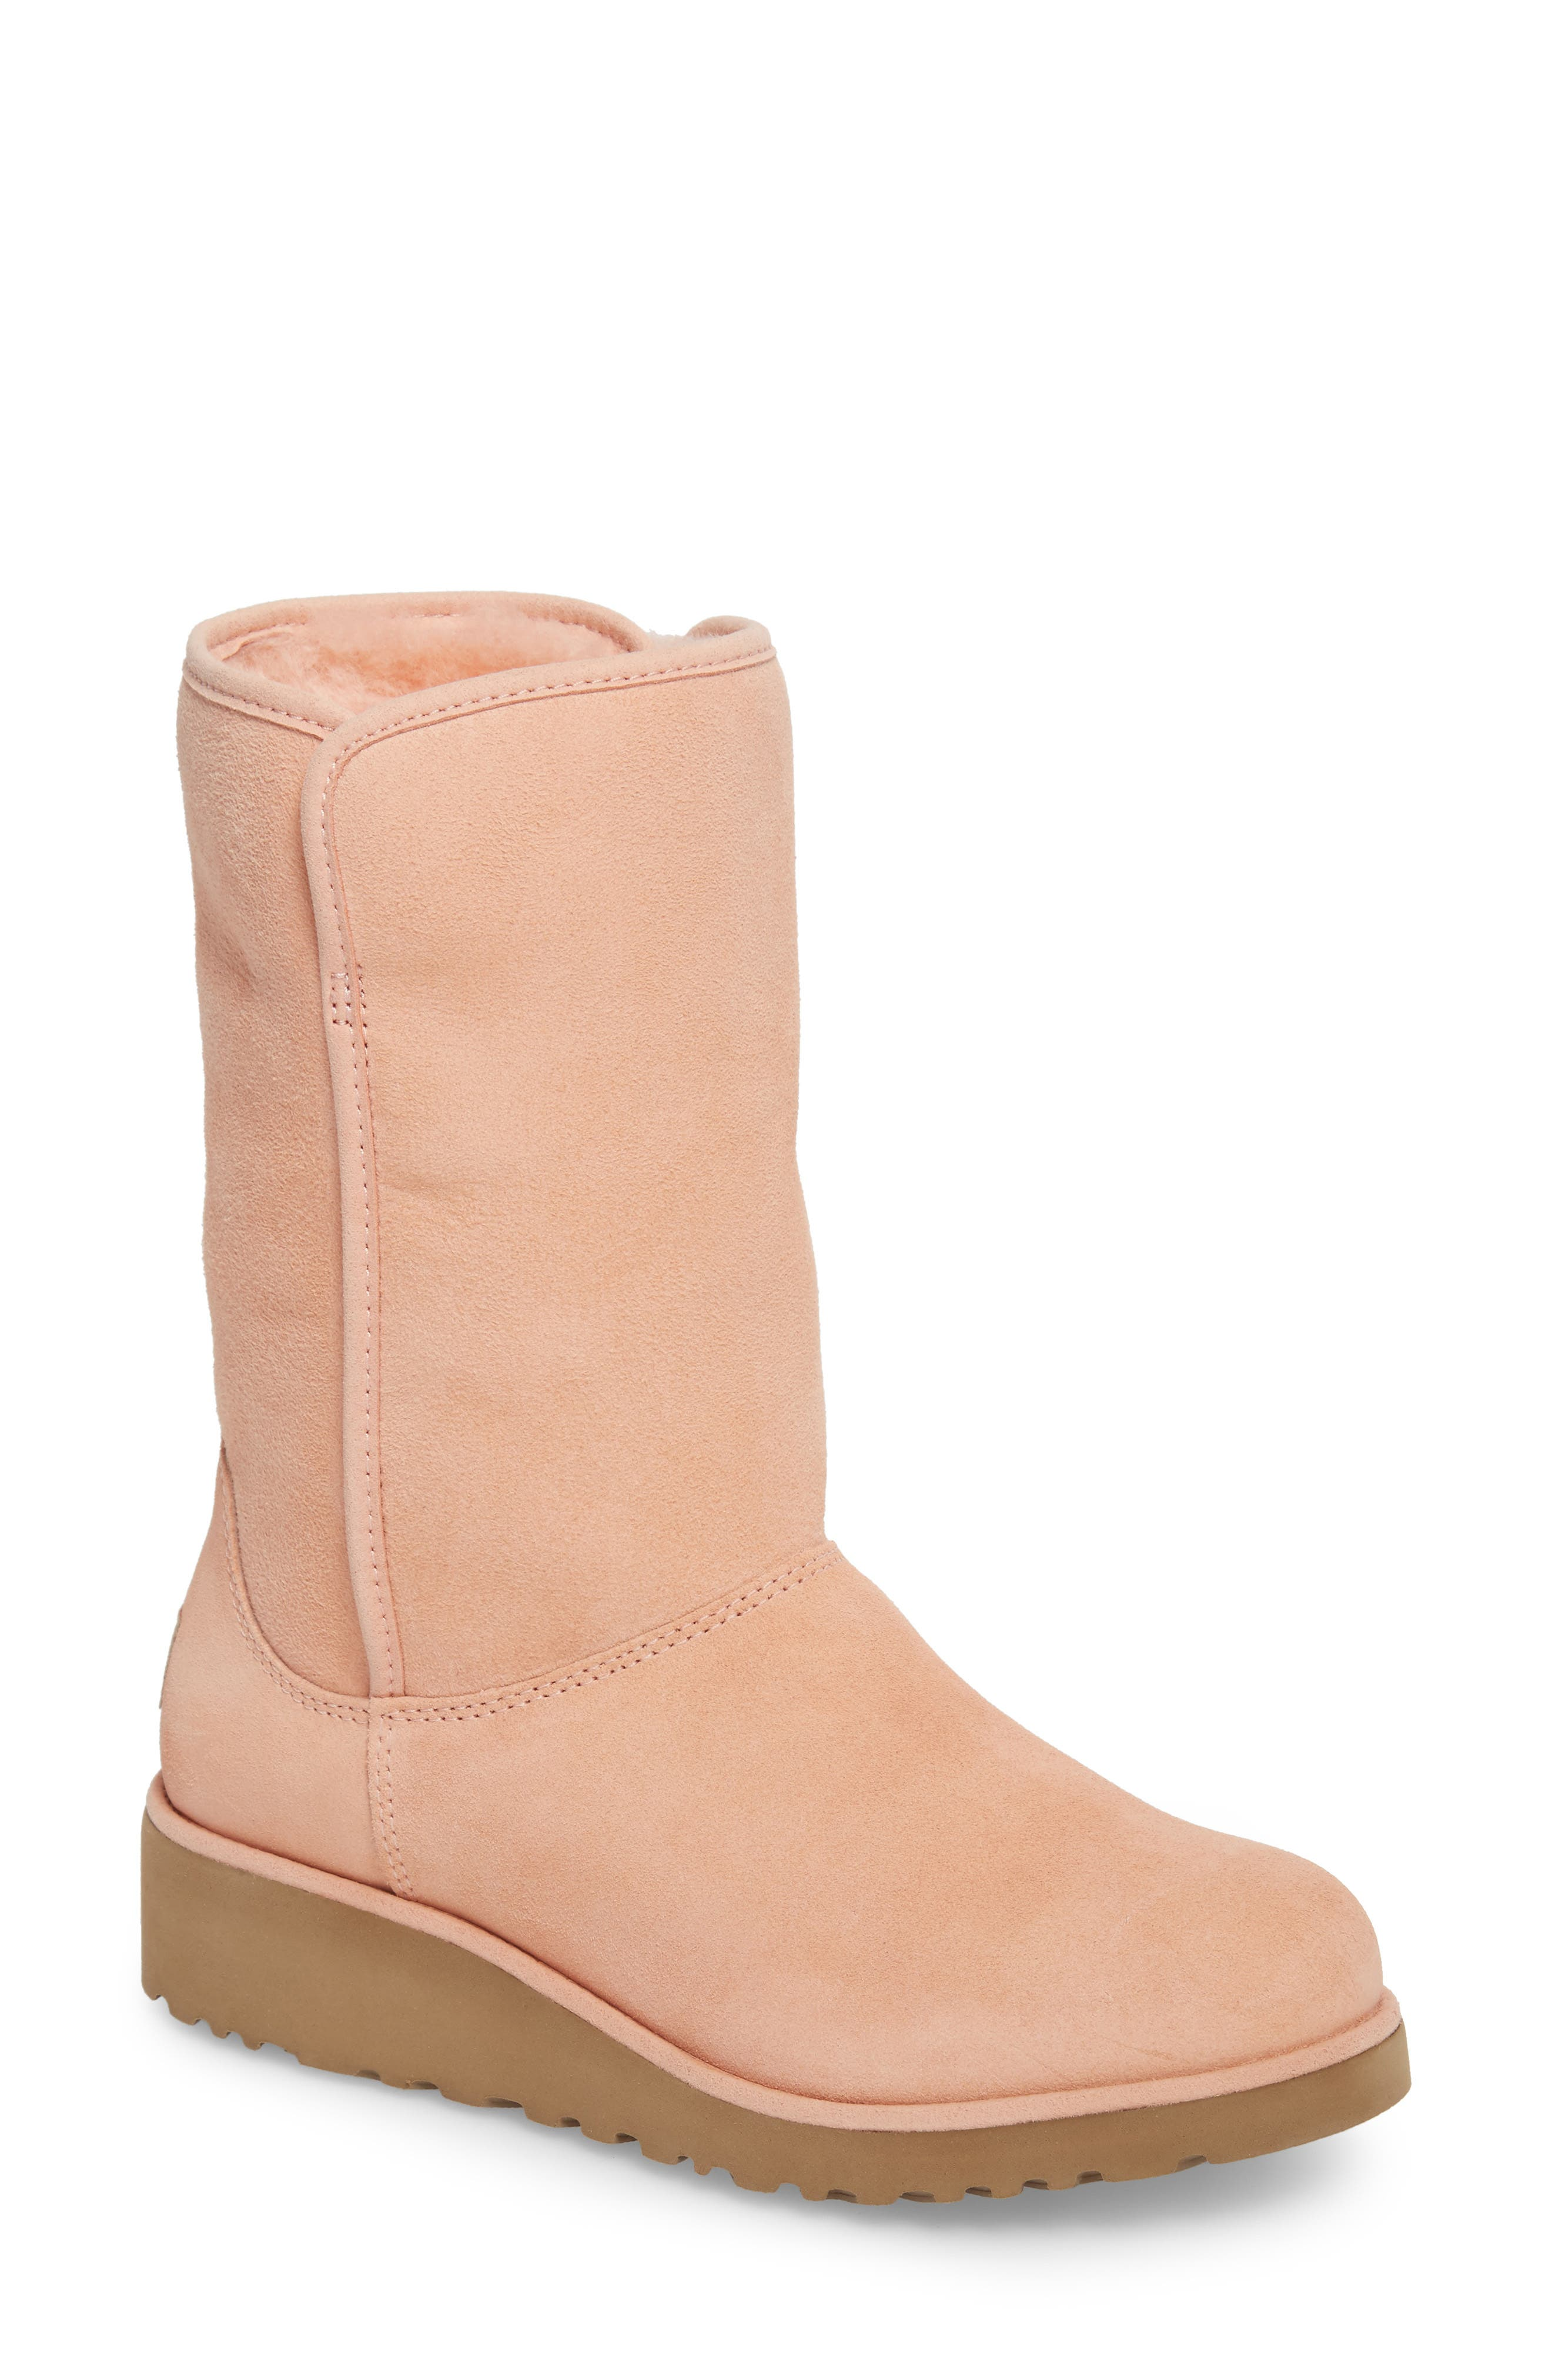 Main Image - UGG® Amie - Classic Slim™ Water Resistant Short Boot (Women)